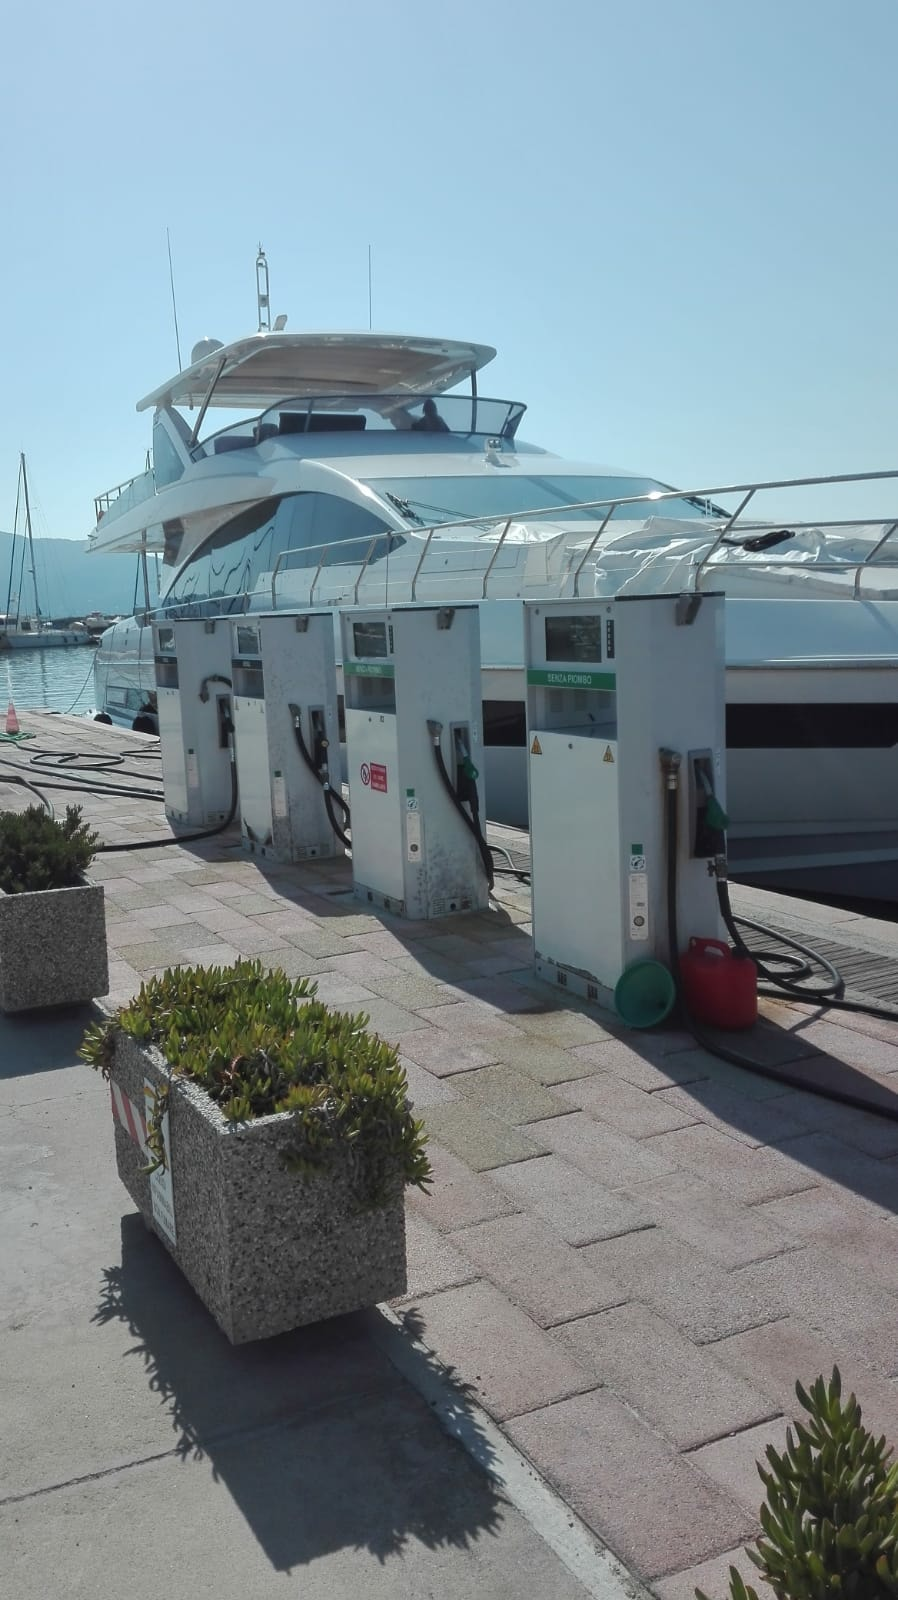 Yacht at the fuel station